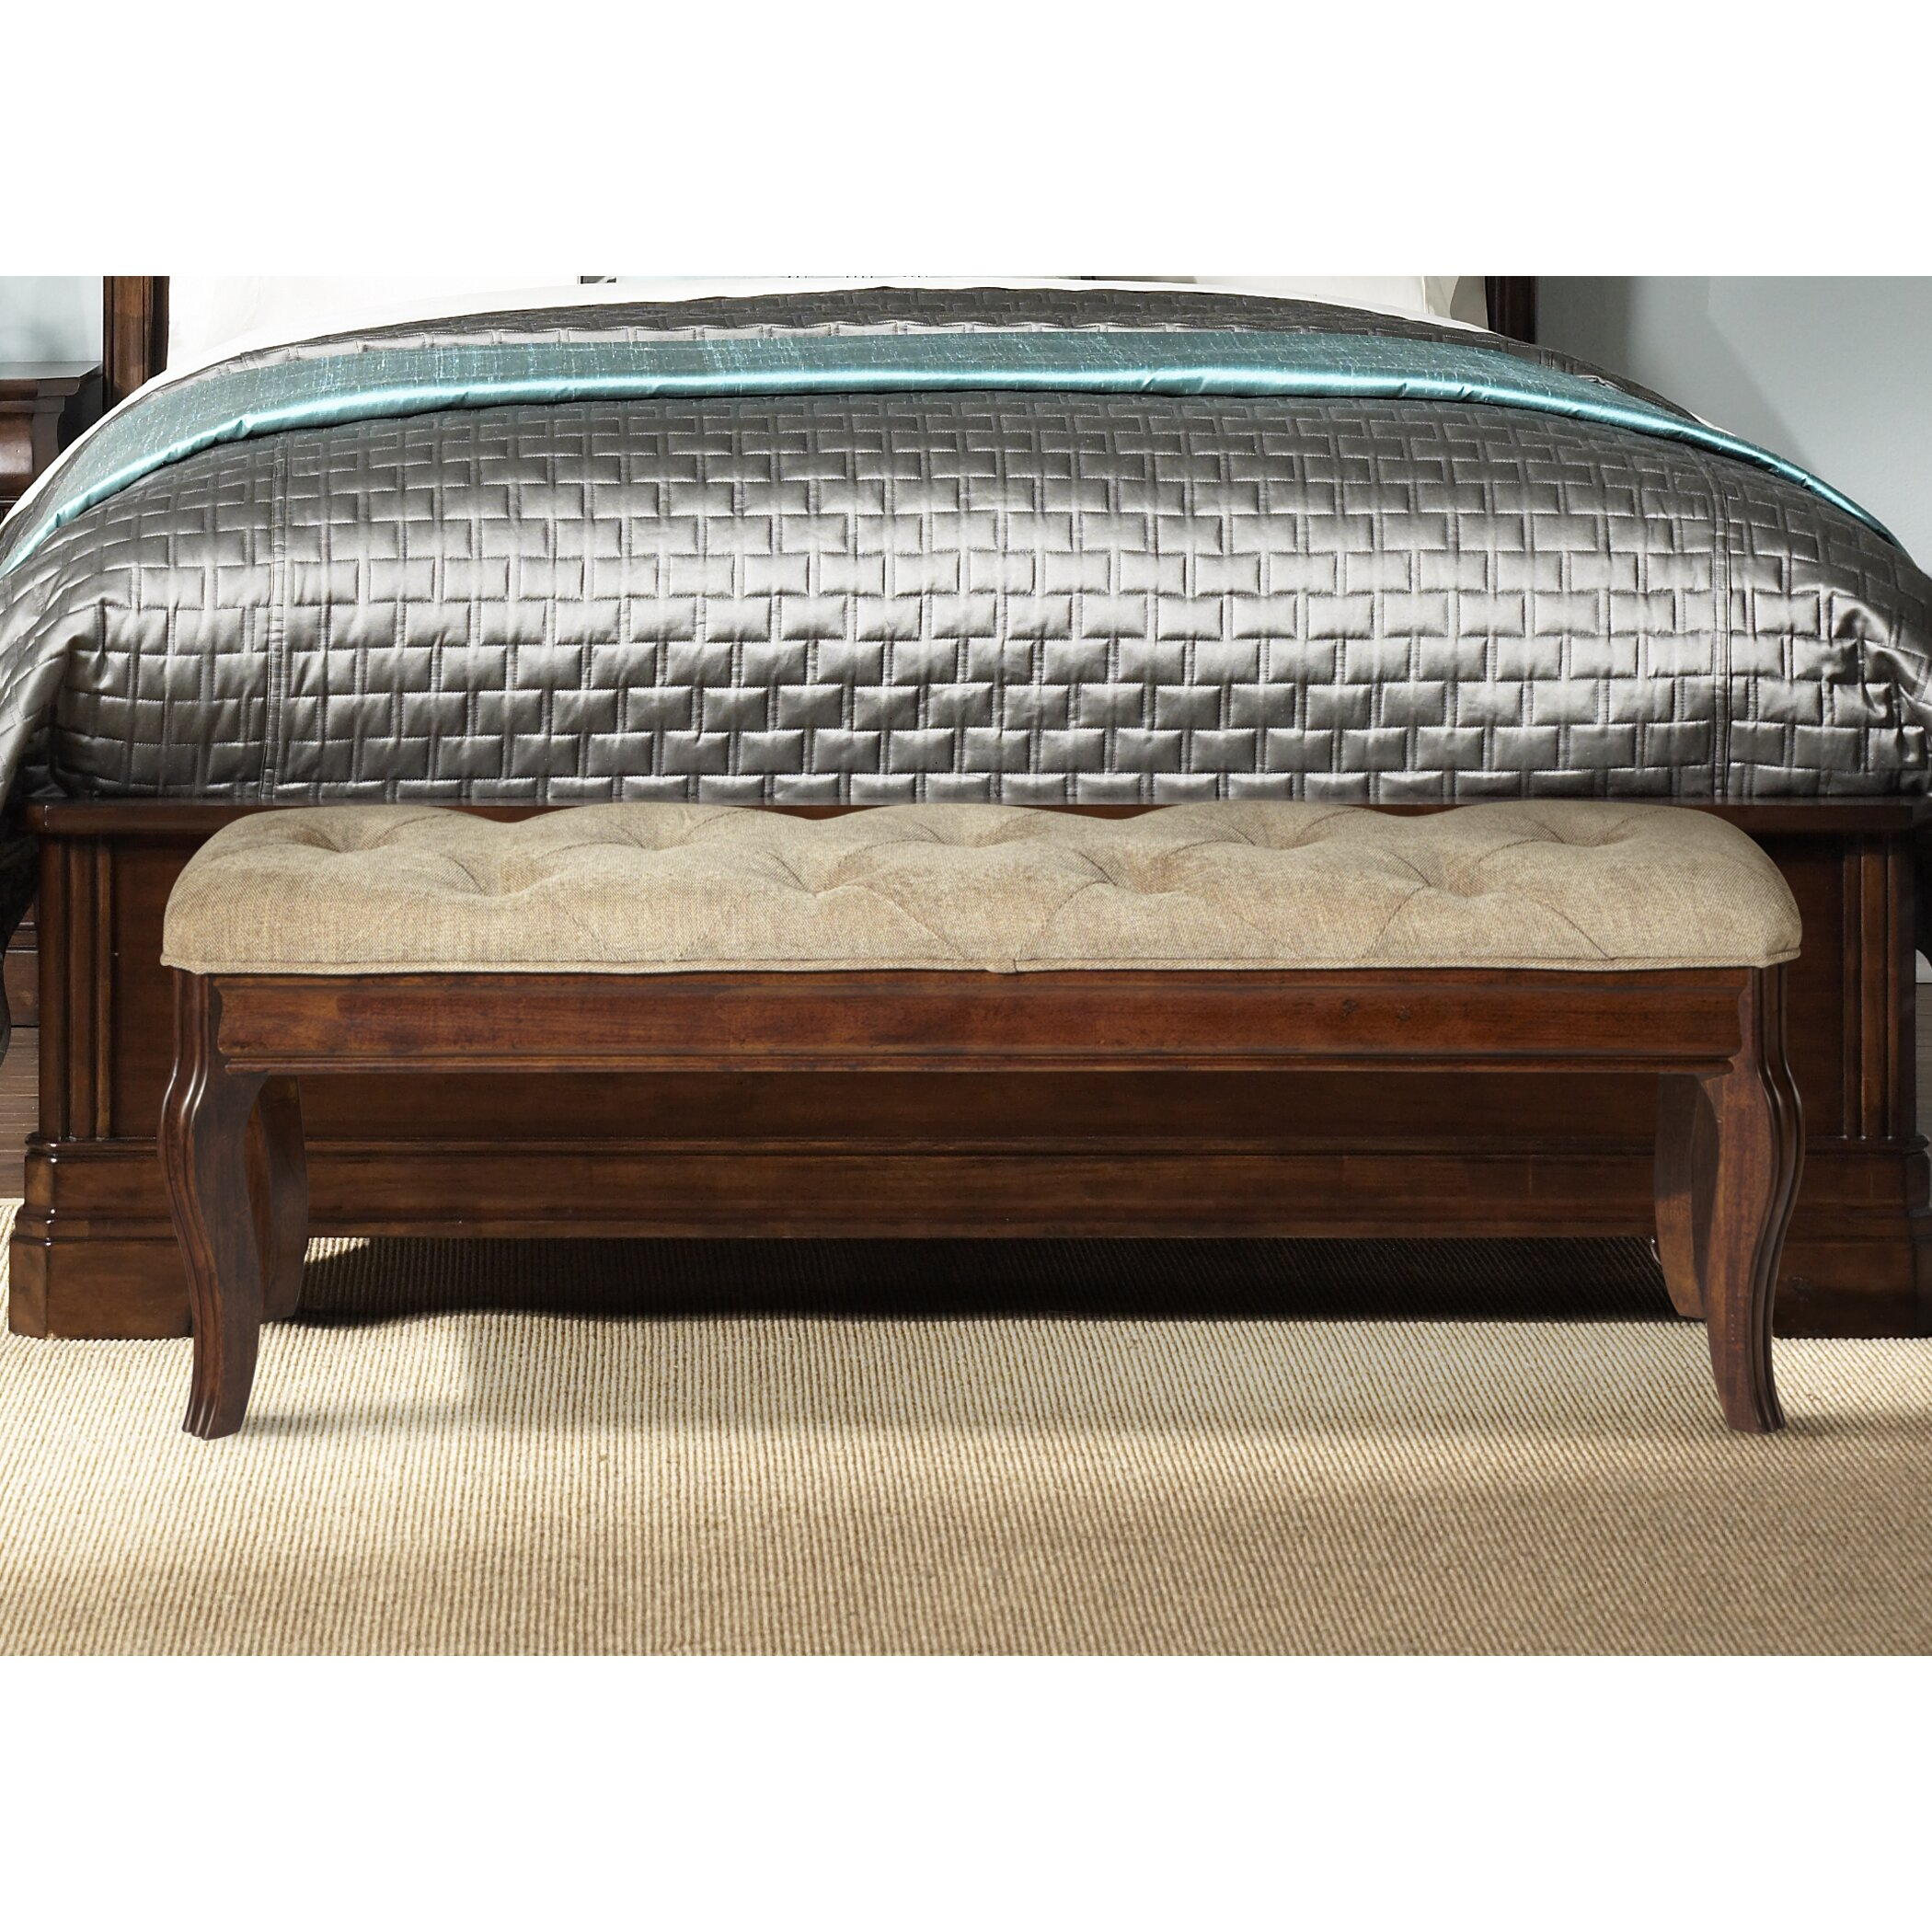 Rosalind wheeler ruppert upholstered bedroom bench reviews wayfair Bed benches